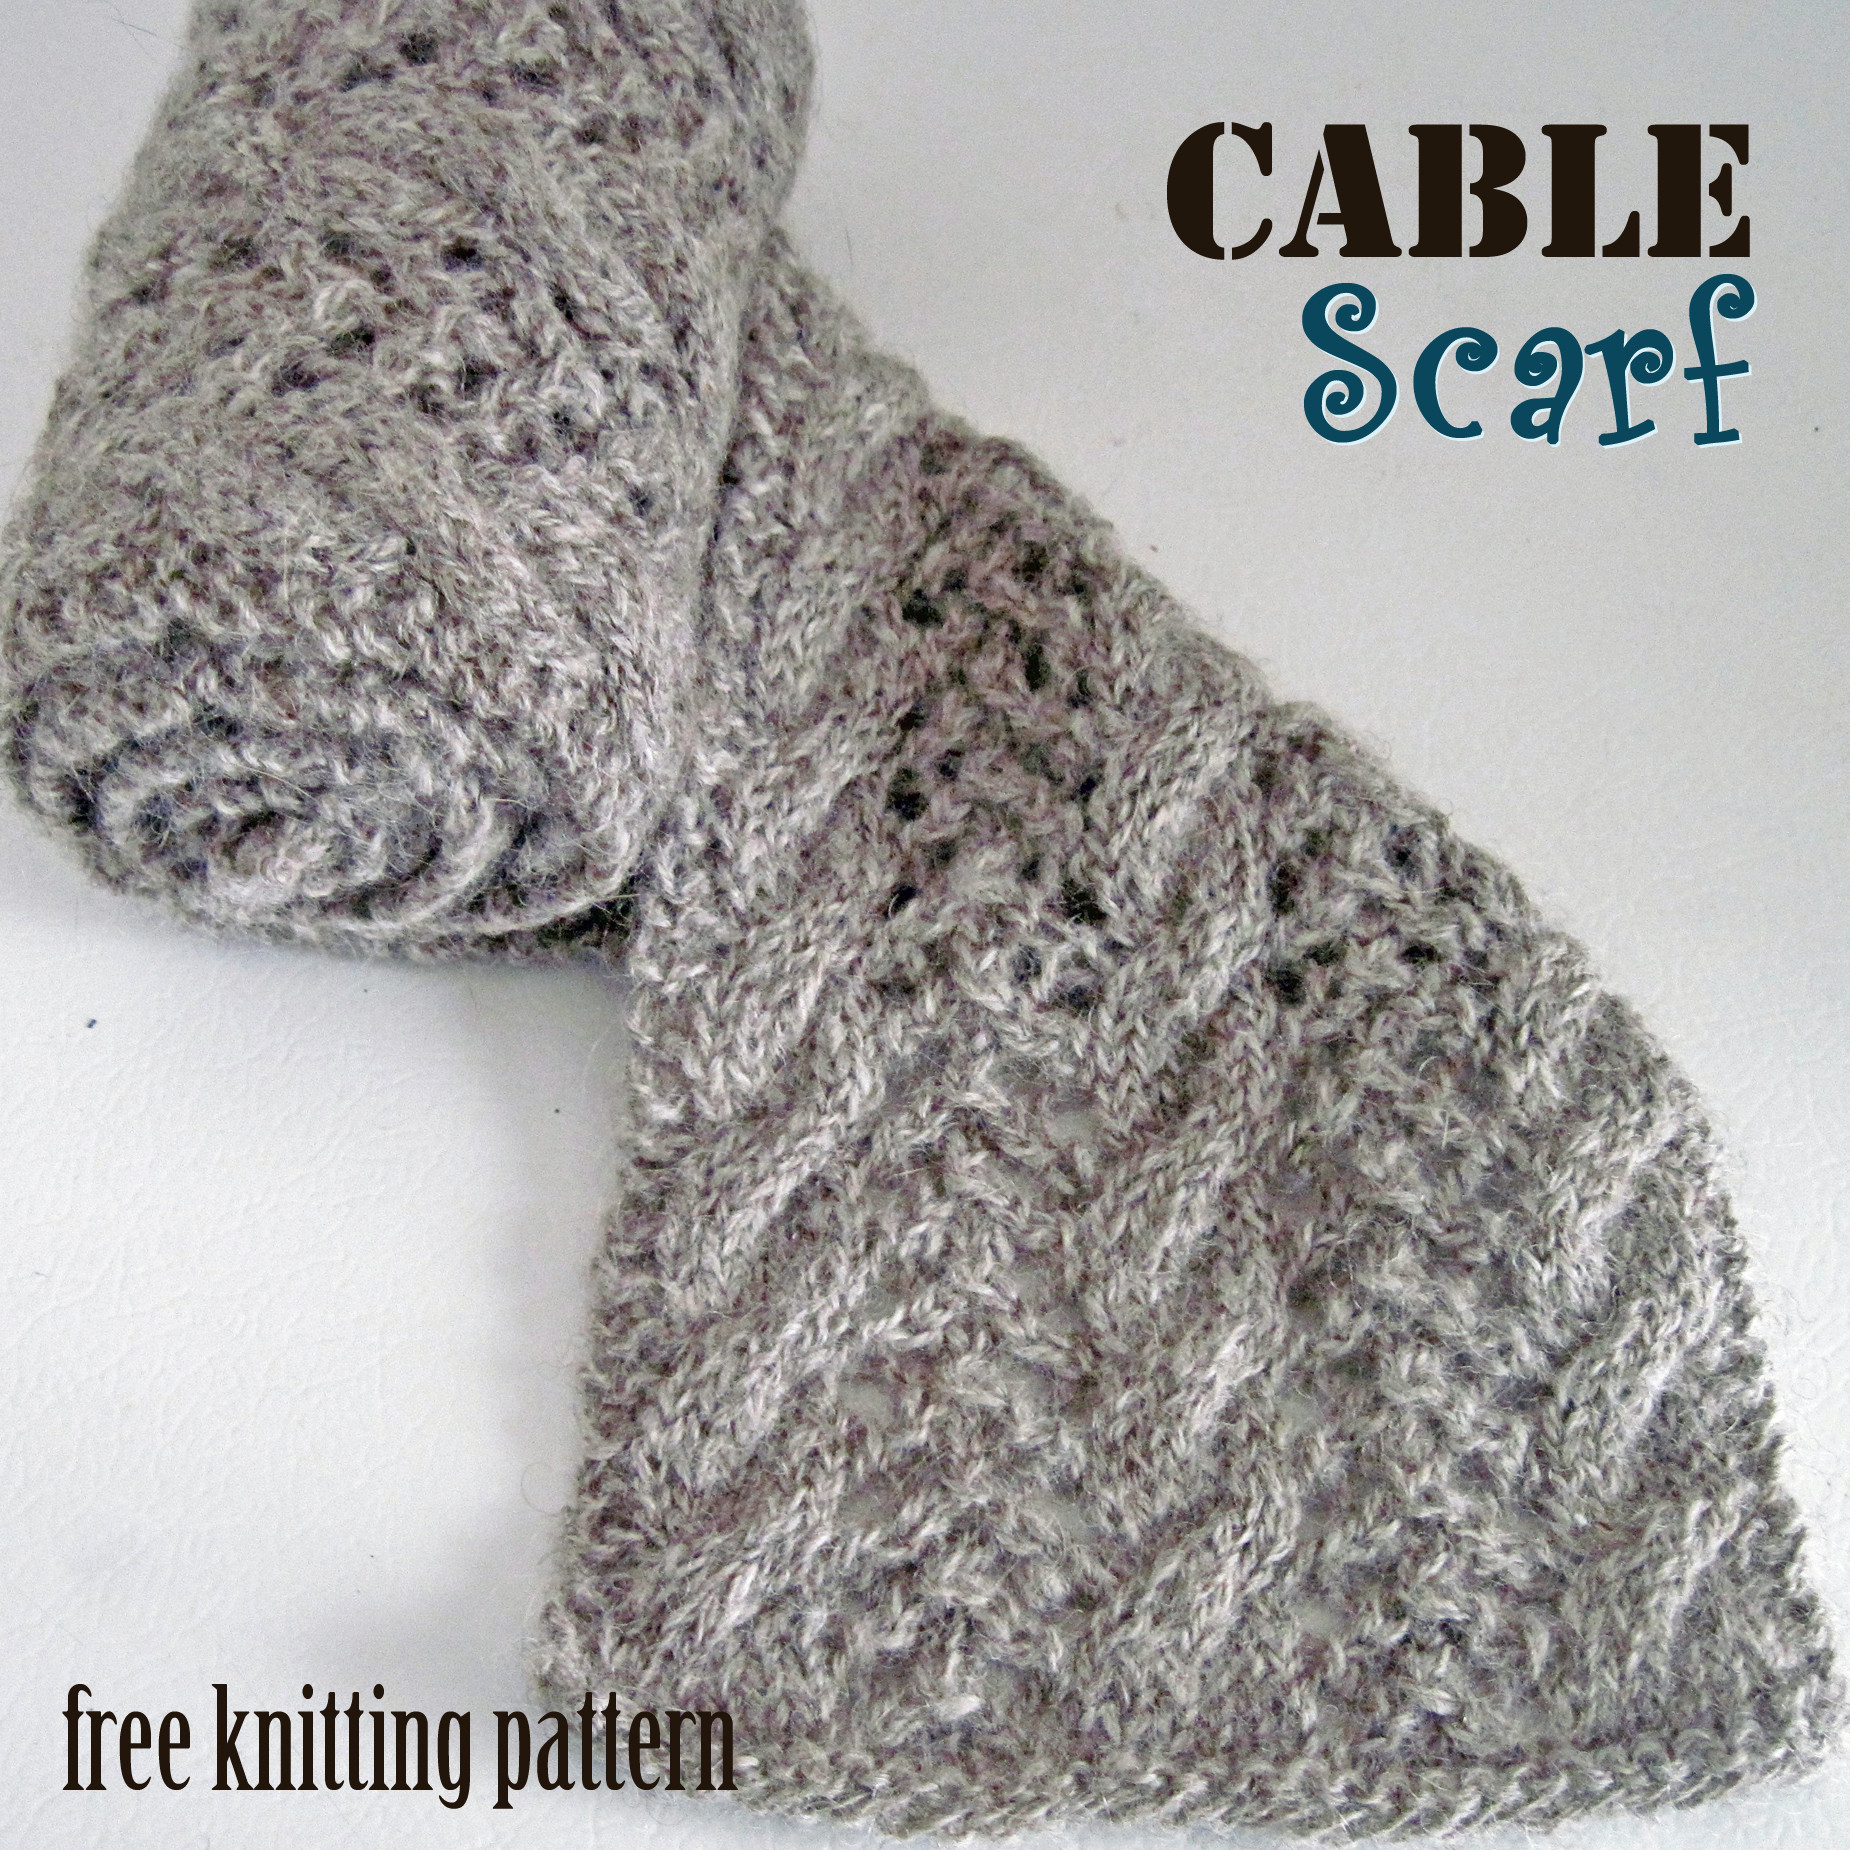 Crochet Cable Scarf New Cable Crochet Scarf Pattern Of Incredible 40 Photos Crochet Cable Scarf